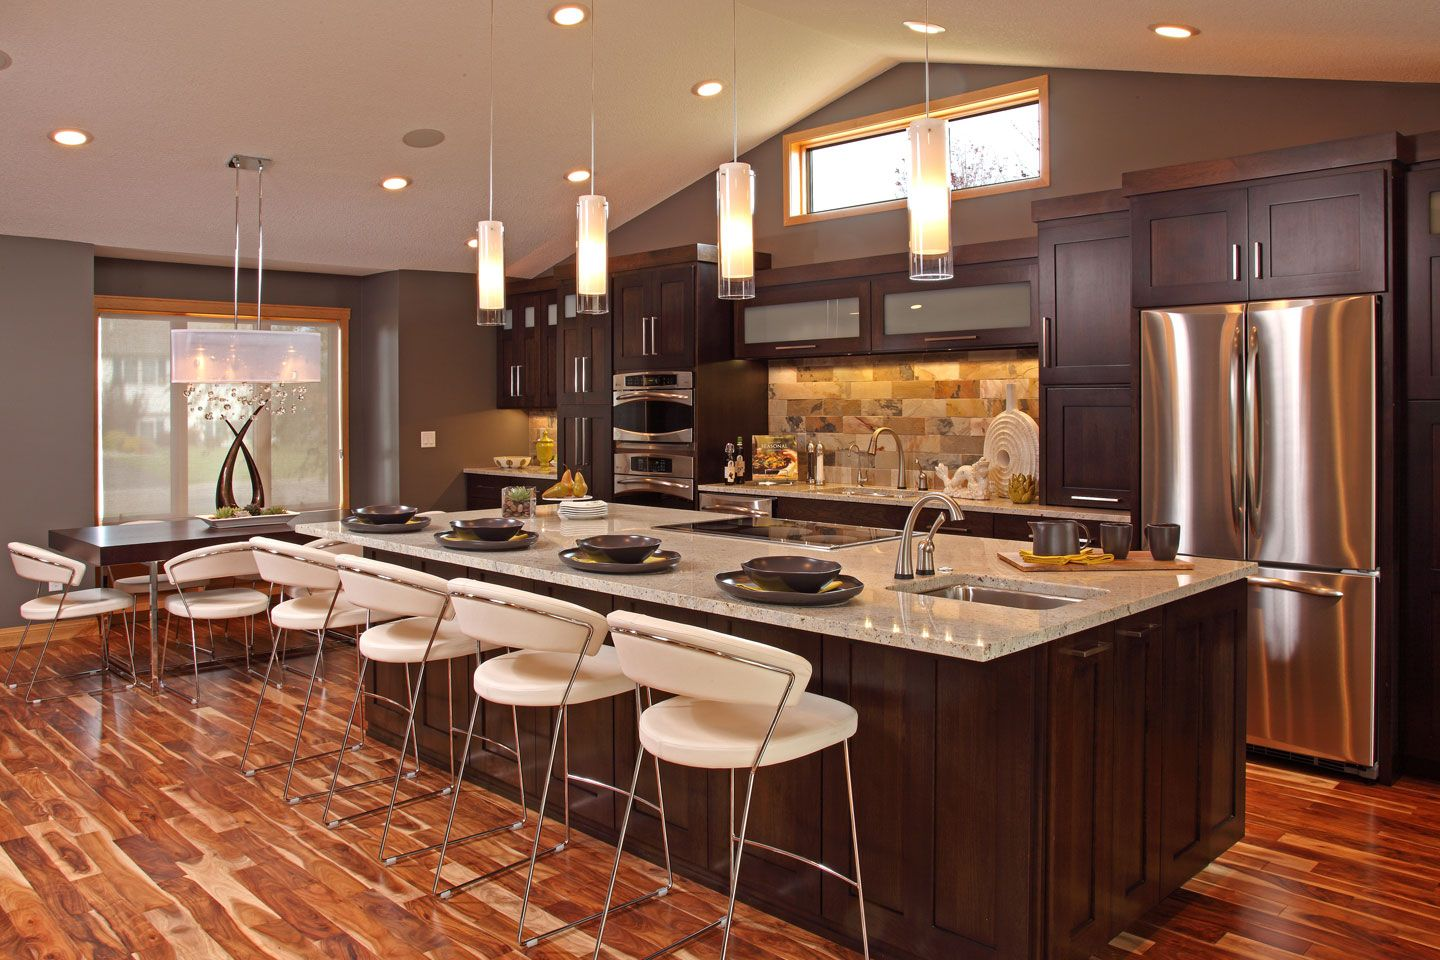 Kitchen Astonishing Spacious Galley Makeover Design Ideas With Dark Brown Wooden Veneer And Rectangular Island White Marble Top Also Classy